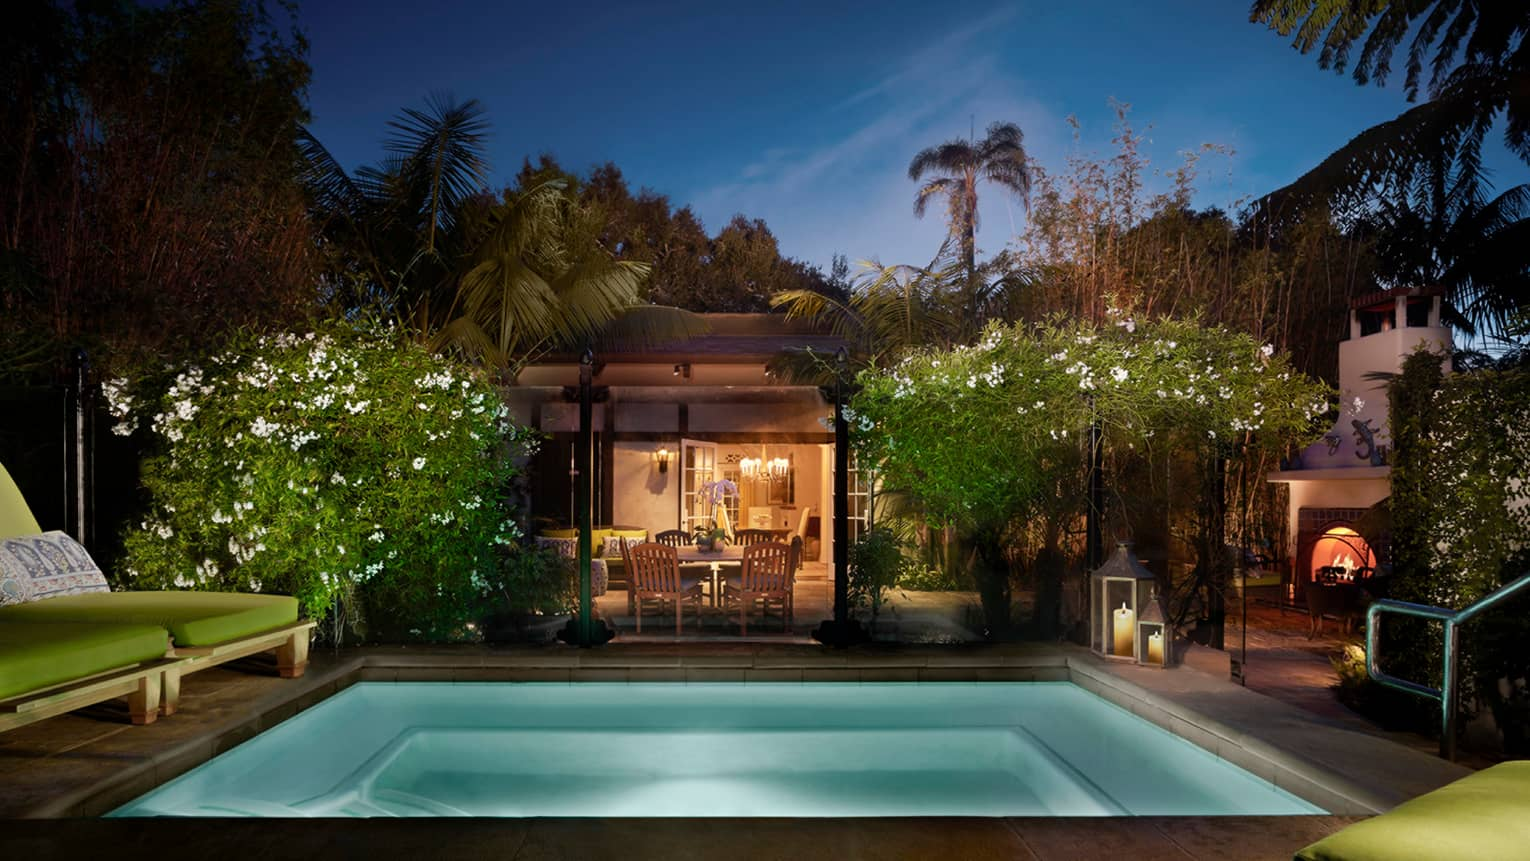 Bungalow Suite backyard at night with illuminated plunge pool, tropical plants, lights from living, dining room